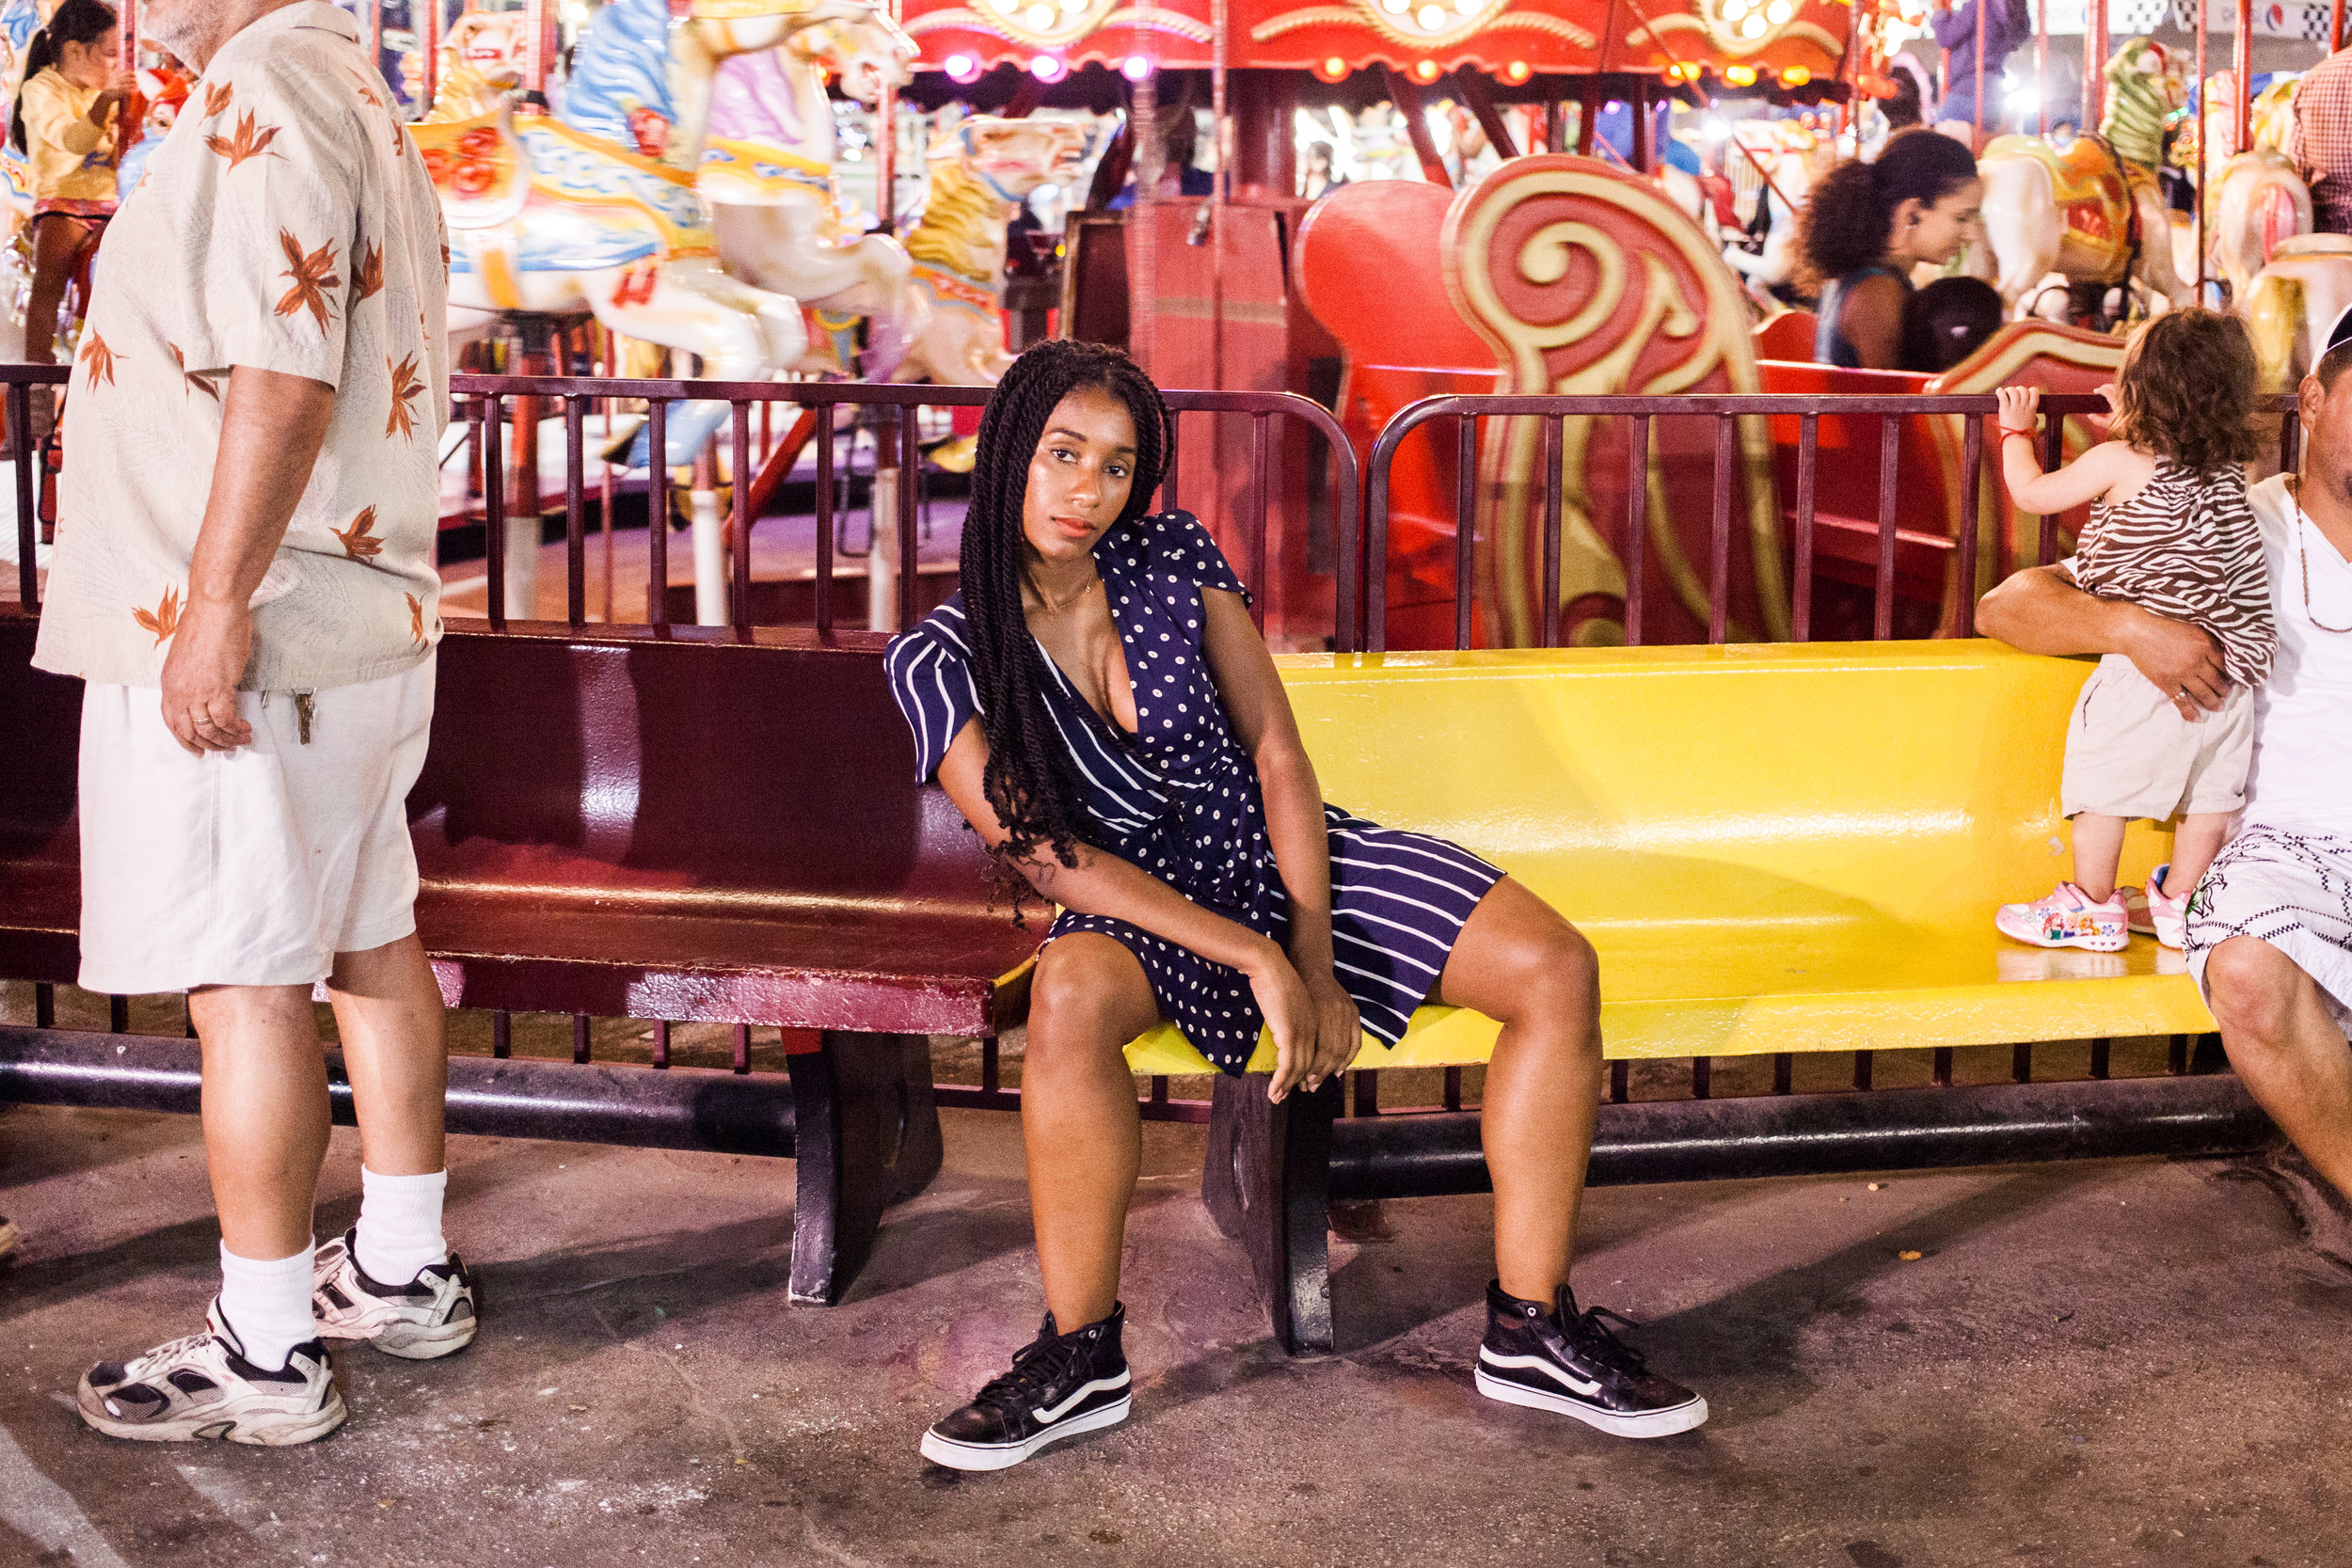 whomstudio_iman-artwell-freeman_coney-island_nyc_0083.jpg